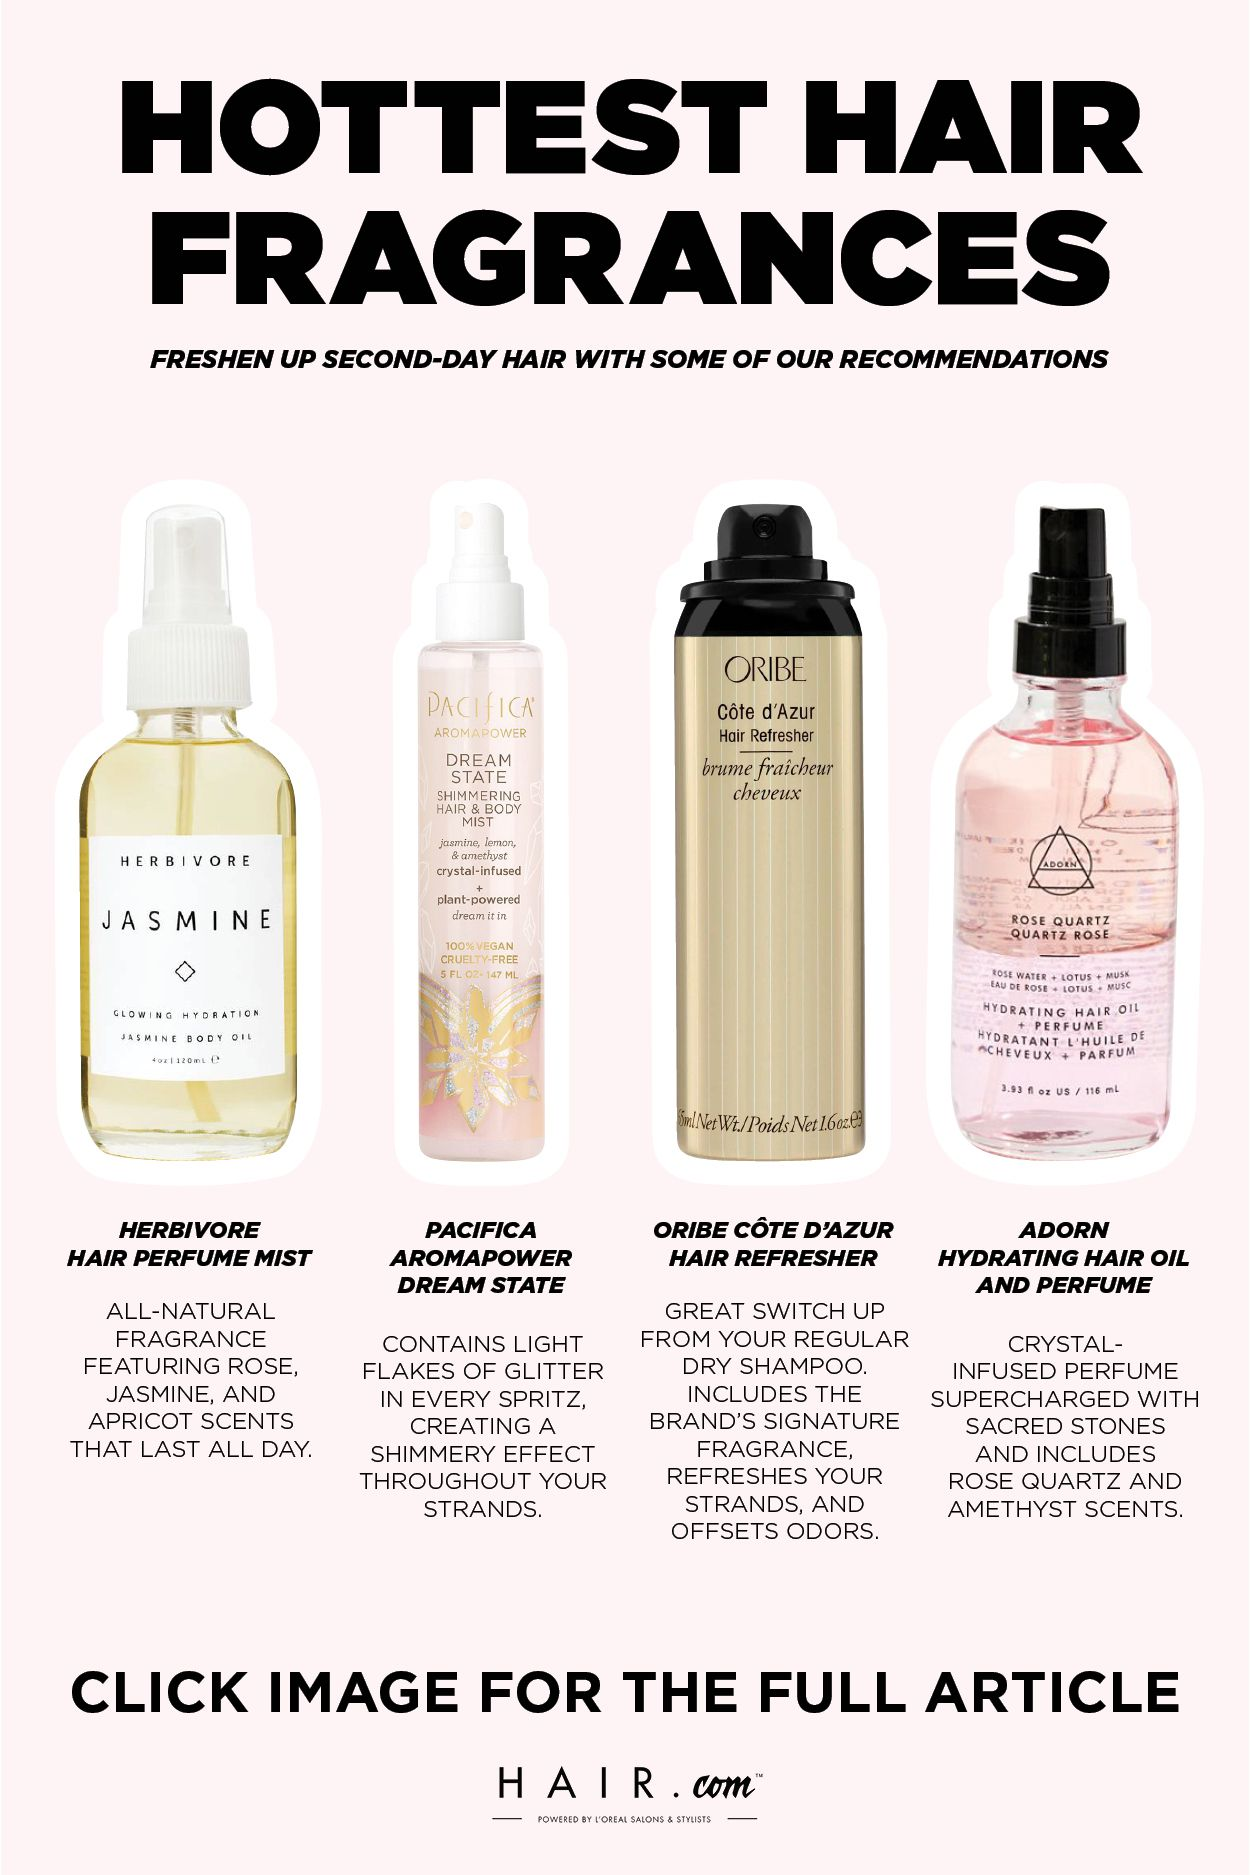 The Best Smelling Hair Fragrances And Perfumes To Try Now Hair Com By L Oreal Hair Fragrance Perfume Collection Fragrance Perfume Dupes Fragrance